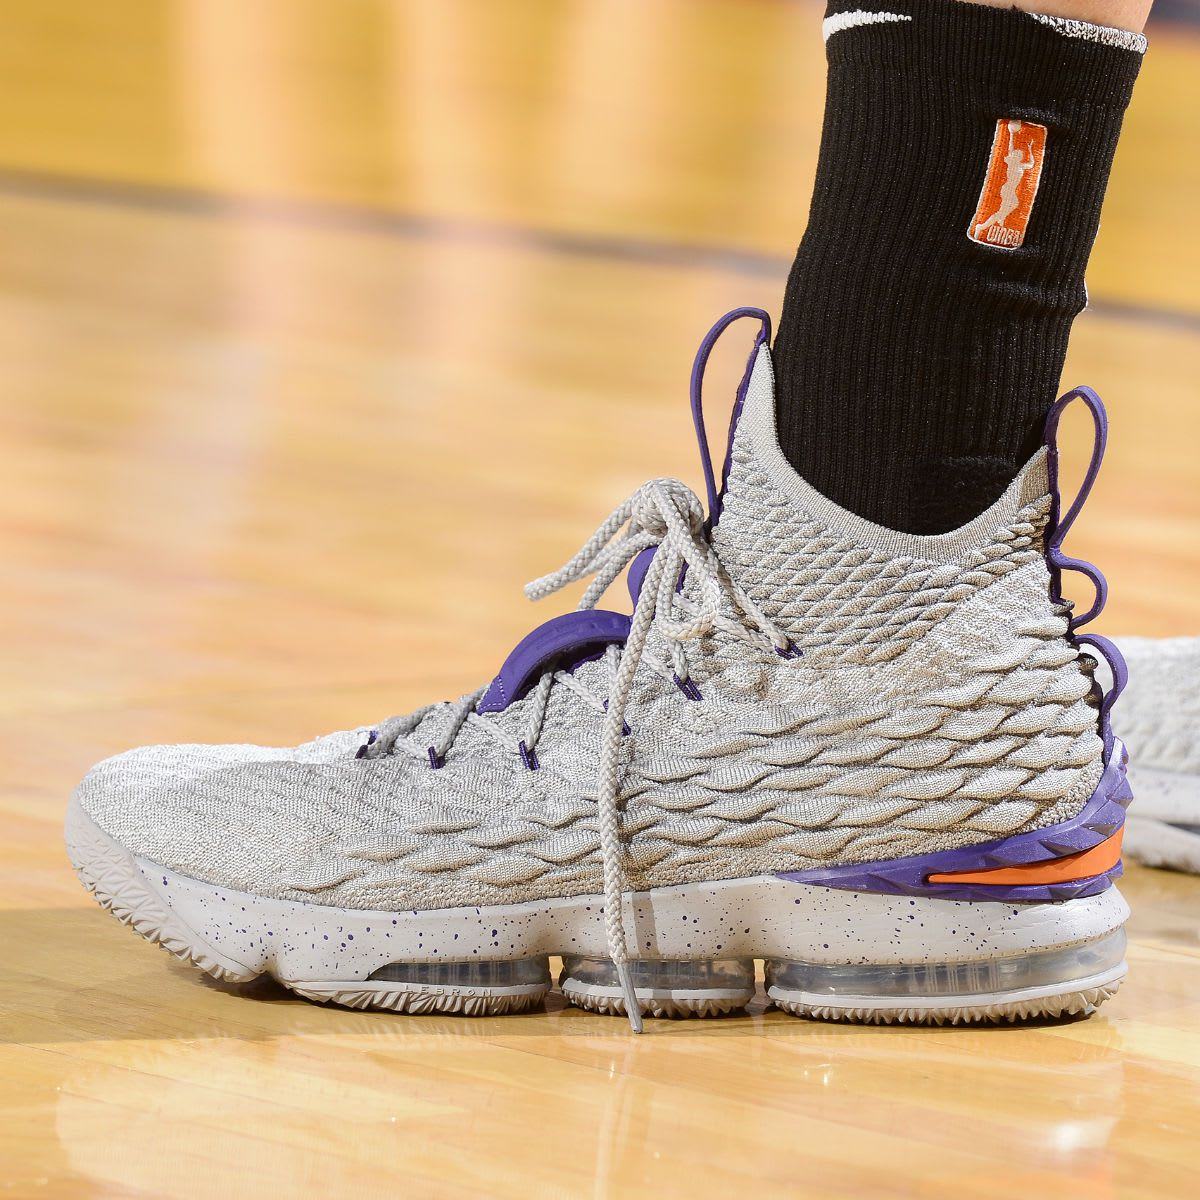 cea716136b17 Diana Taurasi has the best collection of LeBron 15 sneakers ...